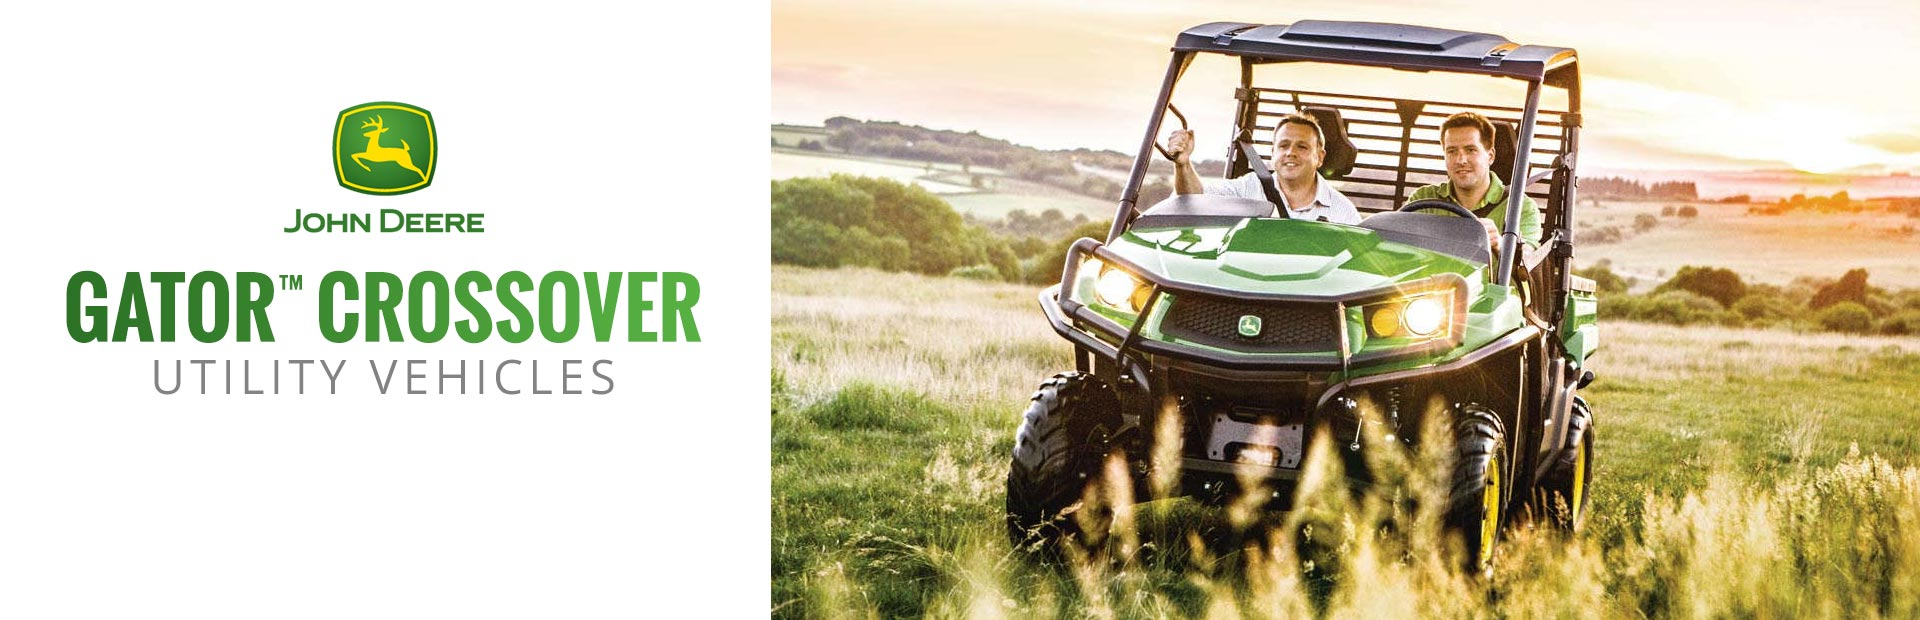 John Deere: Gator™ Crossover Utility Vehicles